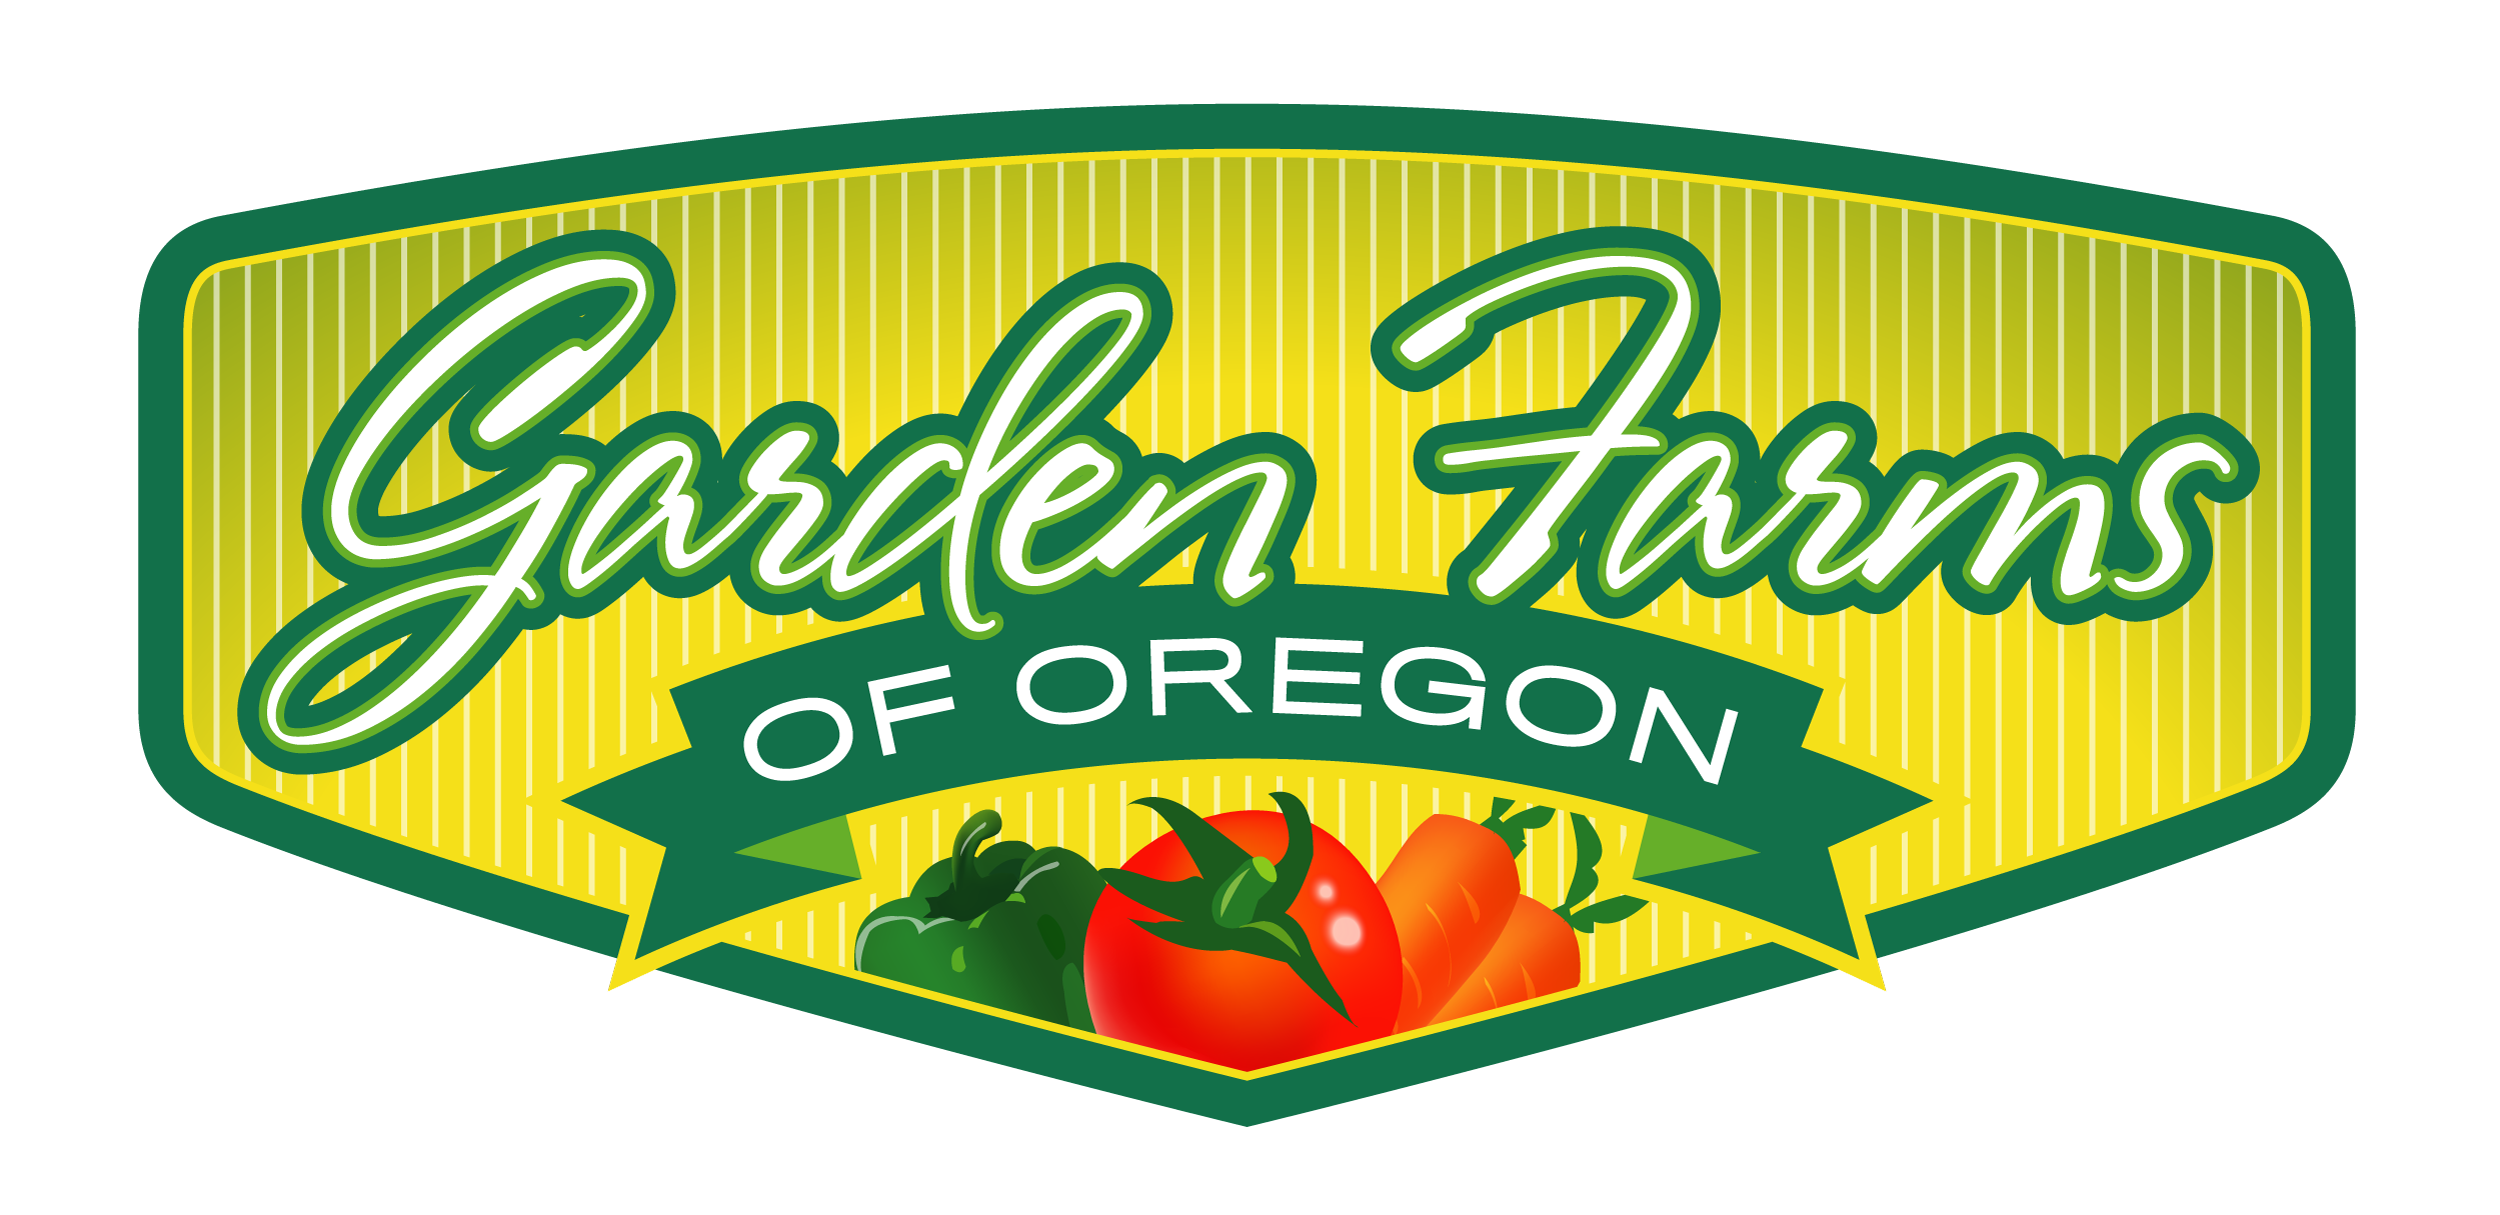 GardenFarms_Oregon_logo.png